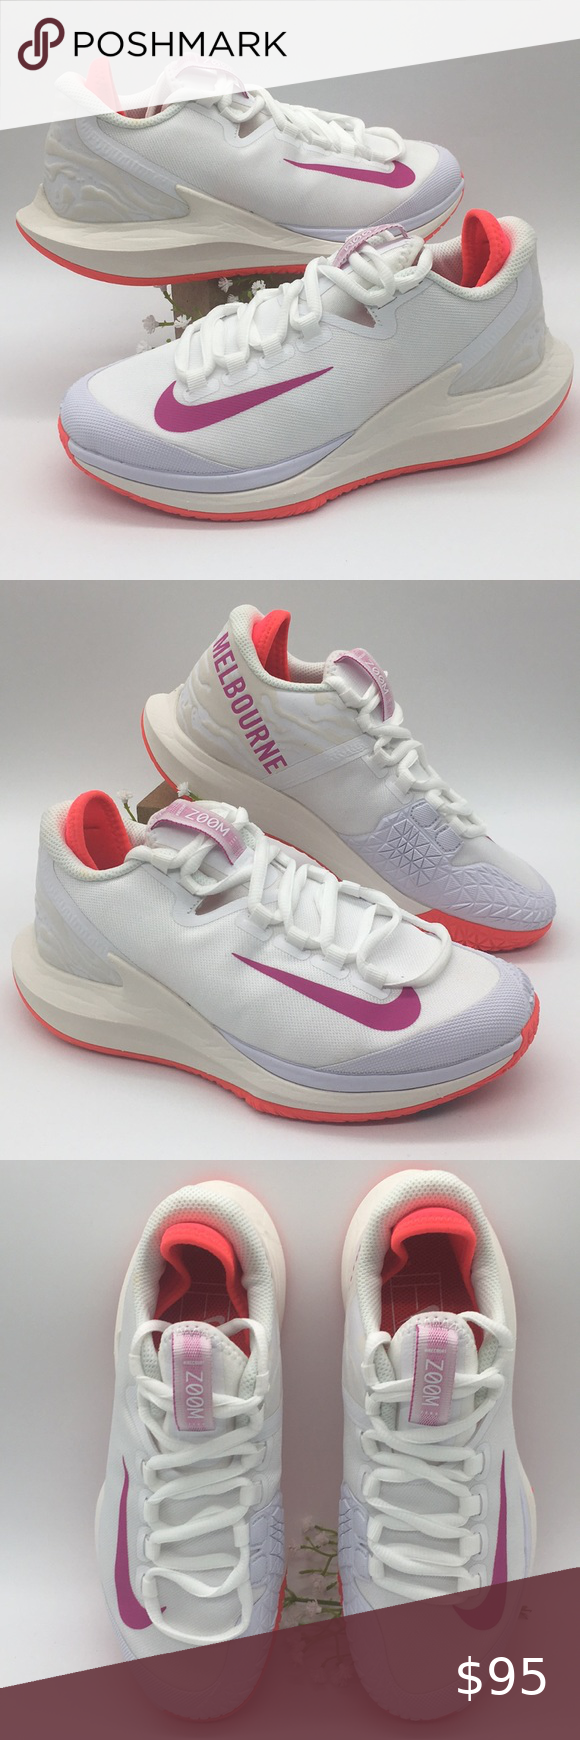 W Nike Court Air Zoom Zero Hc In 2020 Nike Air Zoom Clothes Design